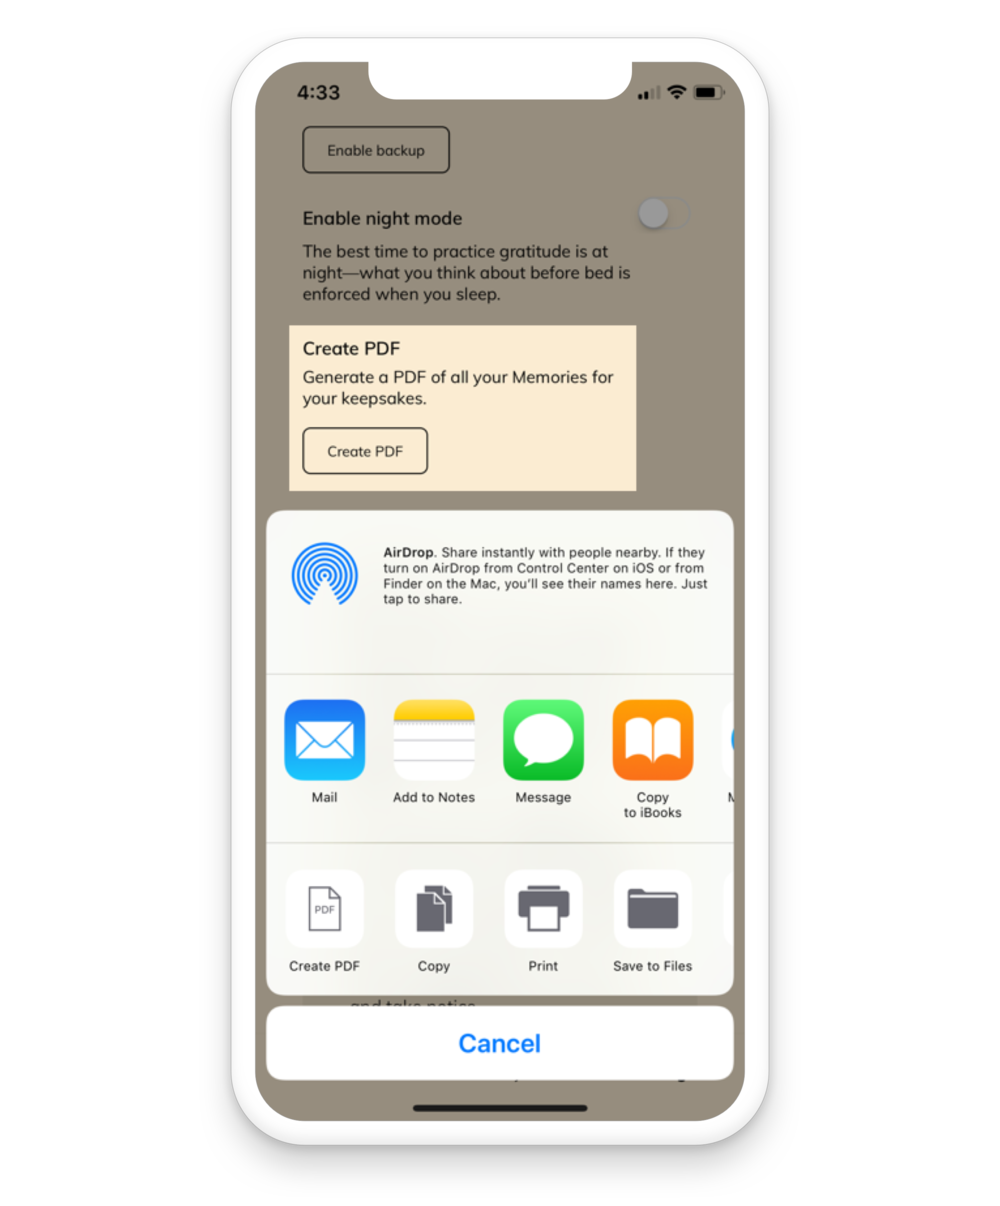 Create a PDF - Instantly generate a PDF of all your Memories. Email it to yourself, save it to your device, or print it out.